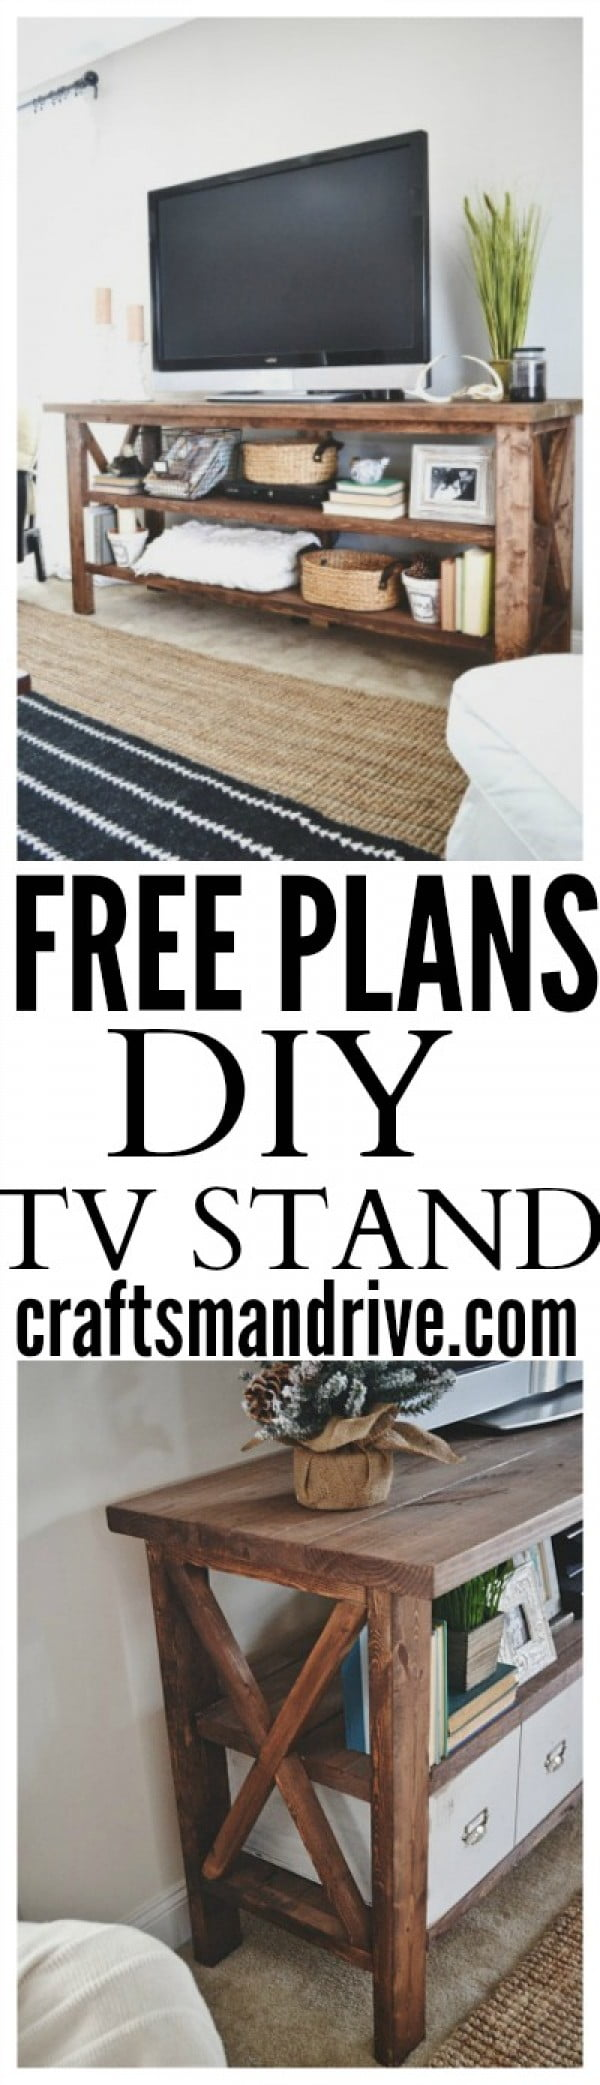 Check out the plans for a DIY TV stand